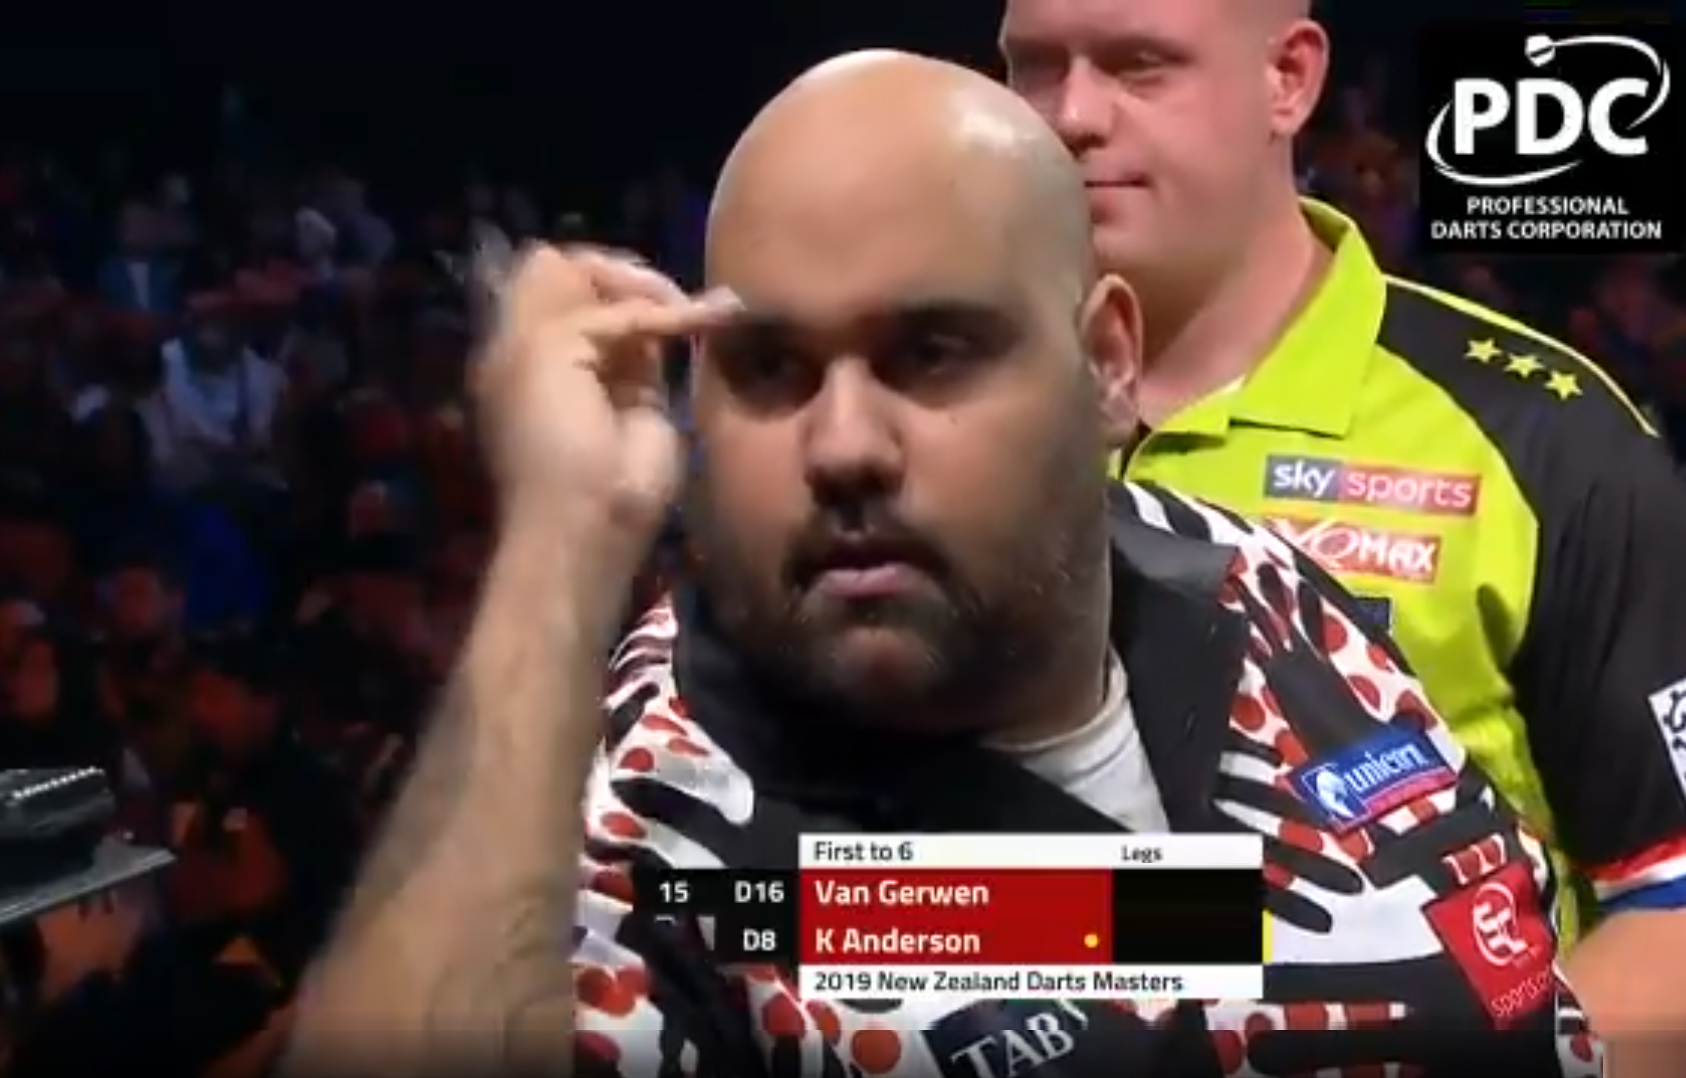 Watch Last Darts Van Gerwen v Anderson At New Zealand Darts Masters